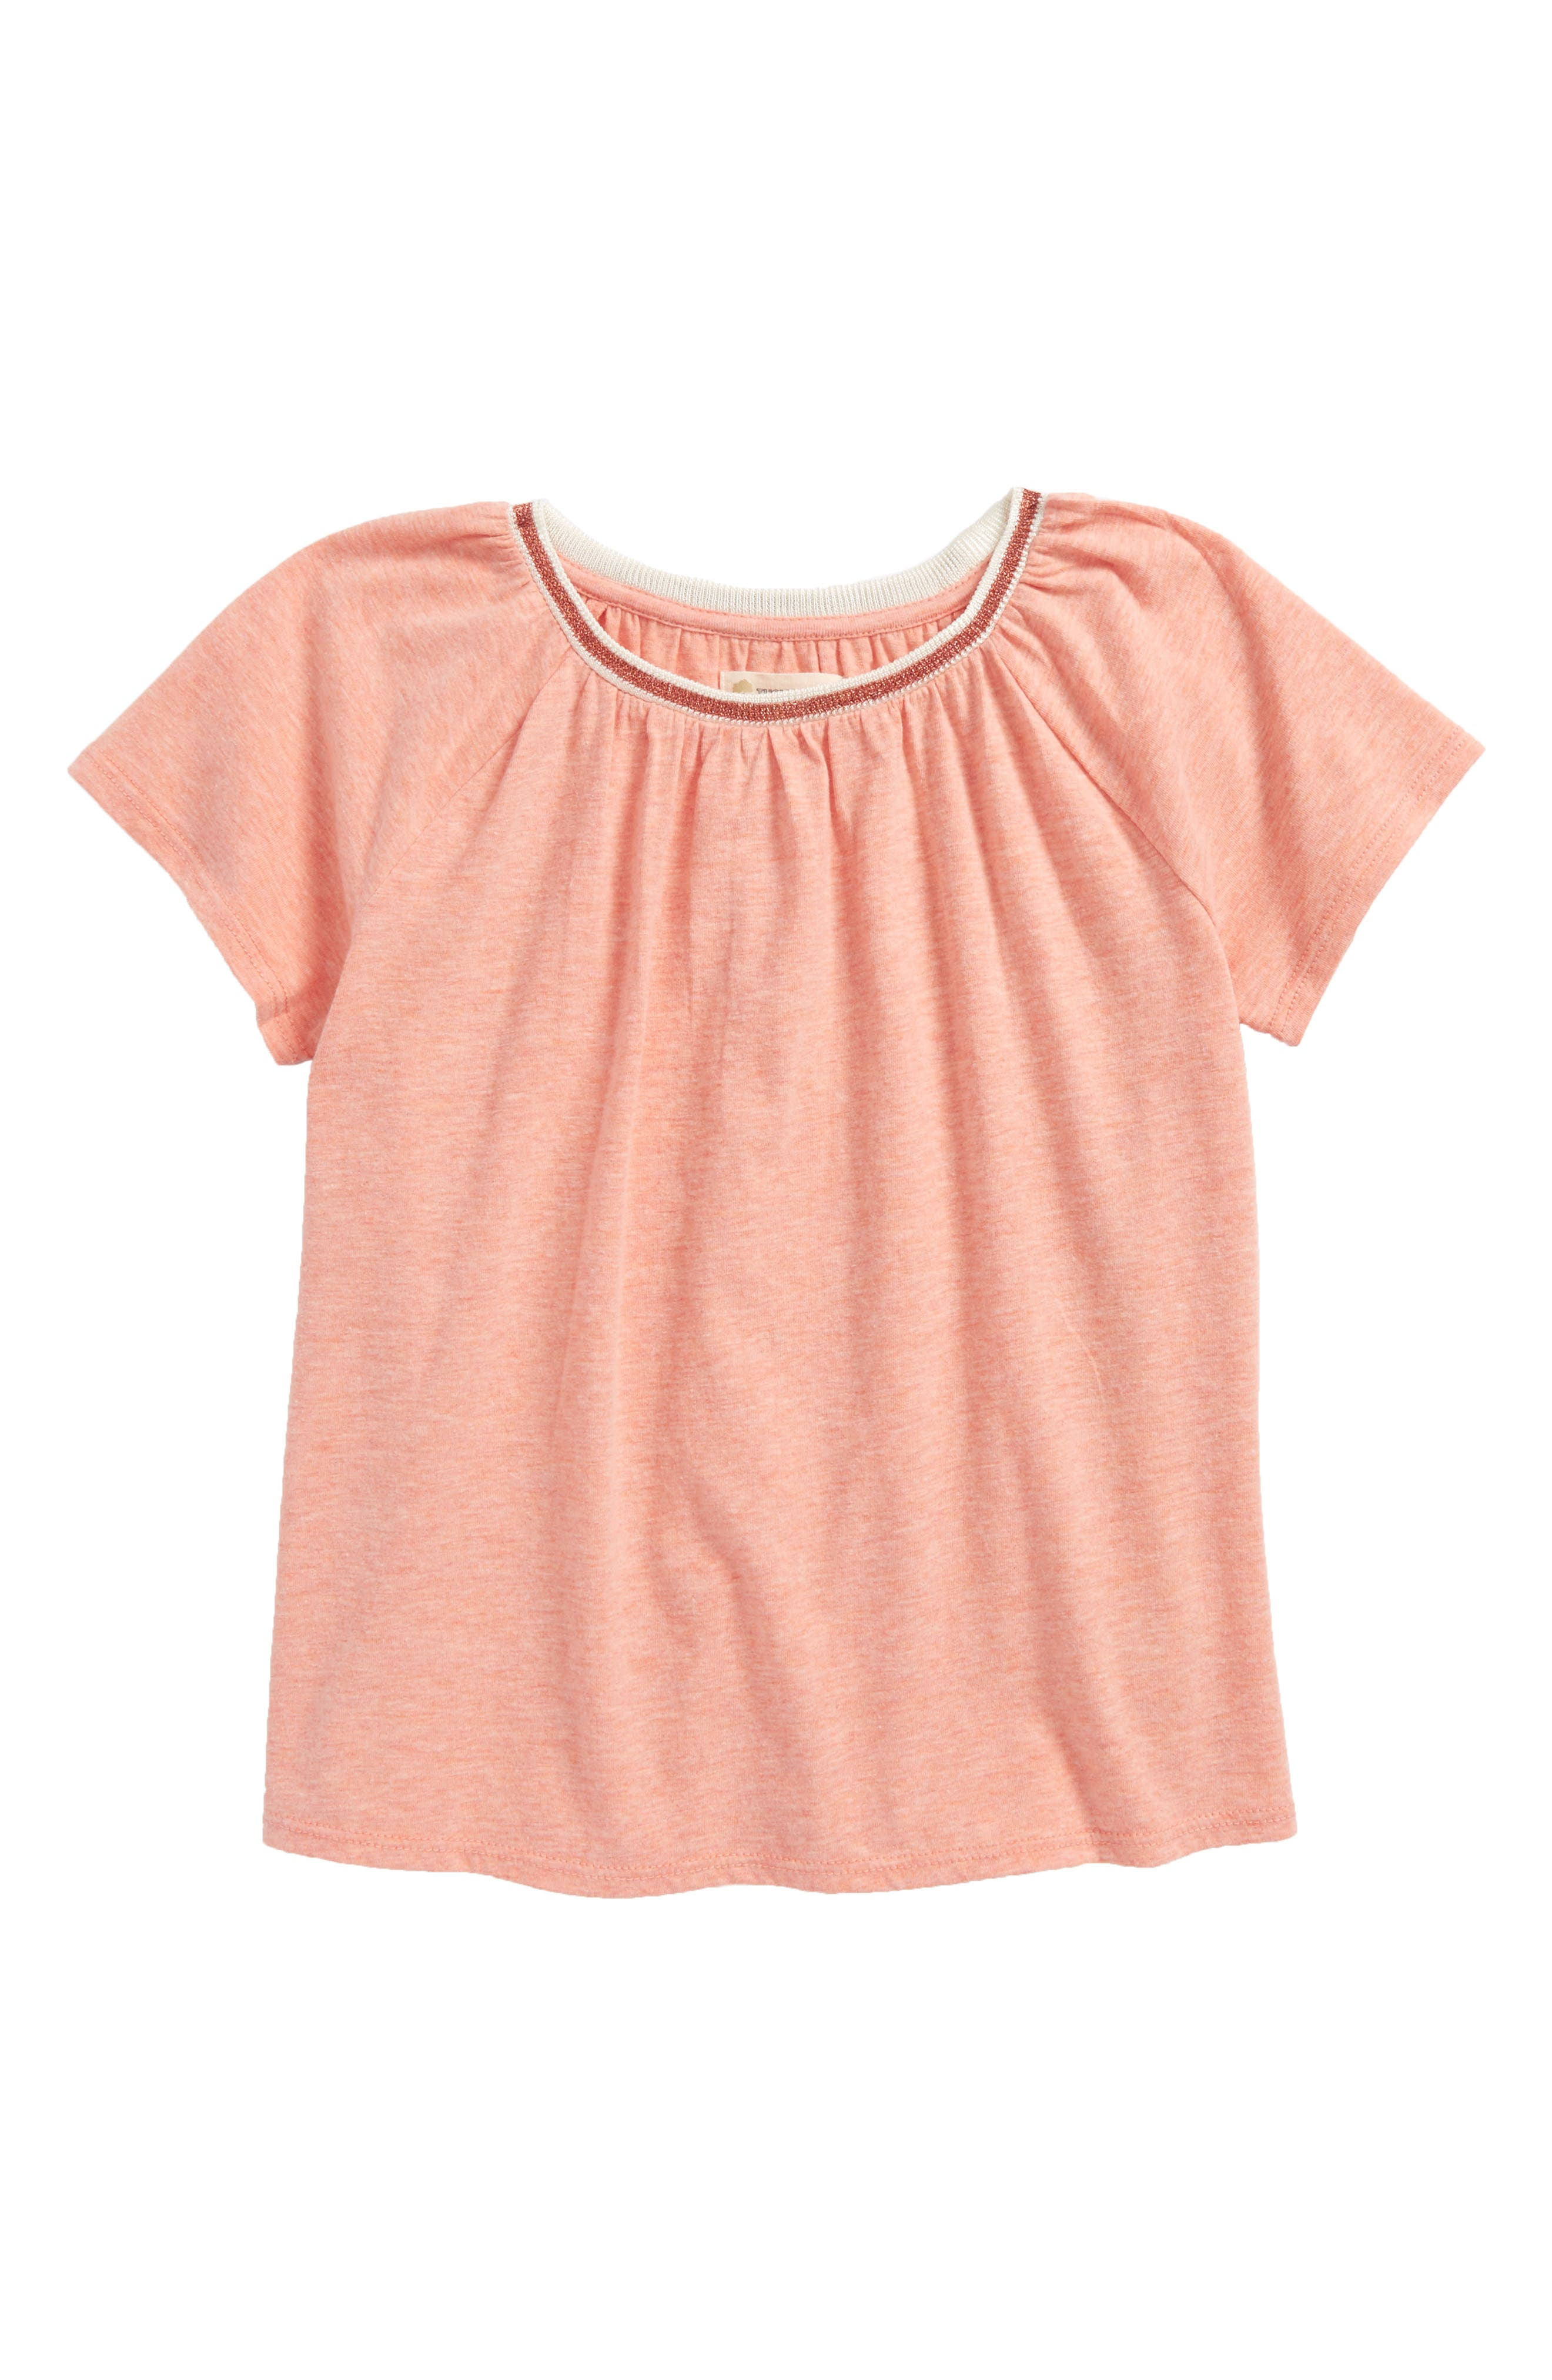 Essential Tee,                             Main thumbnail 1, color,                             Coral Pink Heather